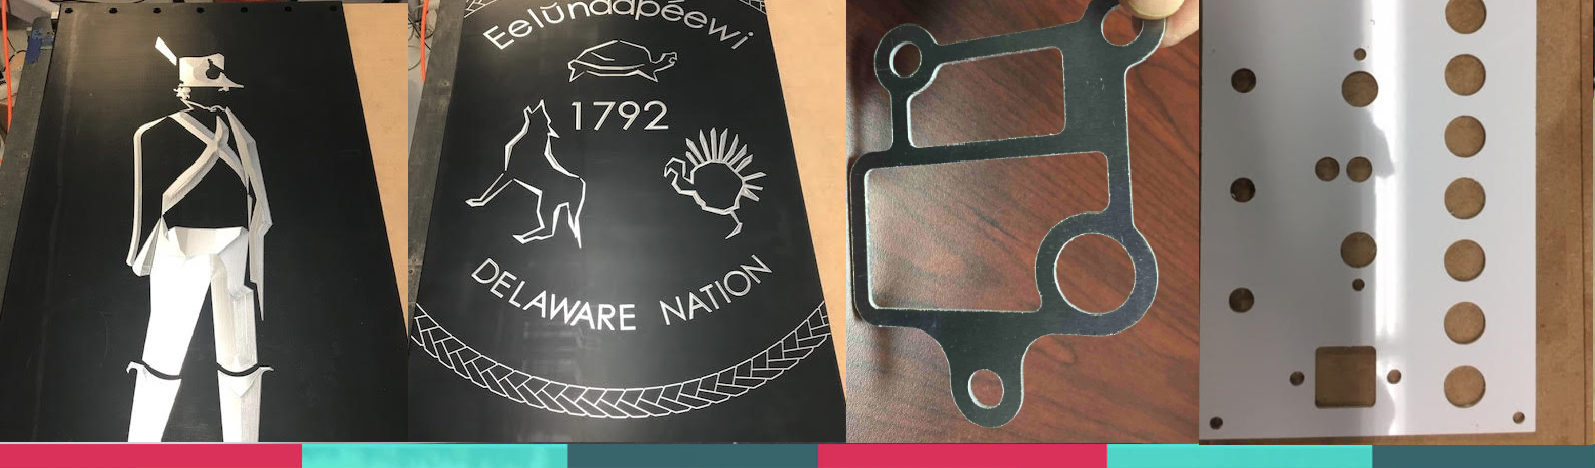 Aluminum Engraving Services - Engraved Number Plates & Aluminum Cutting